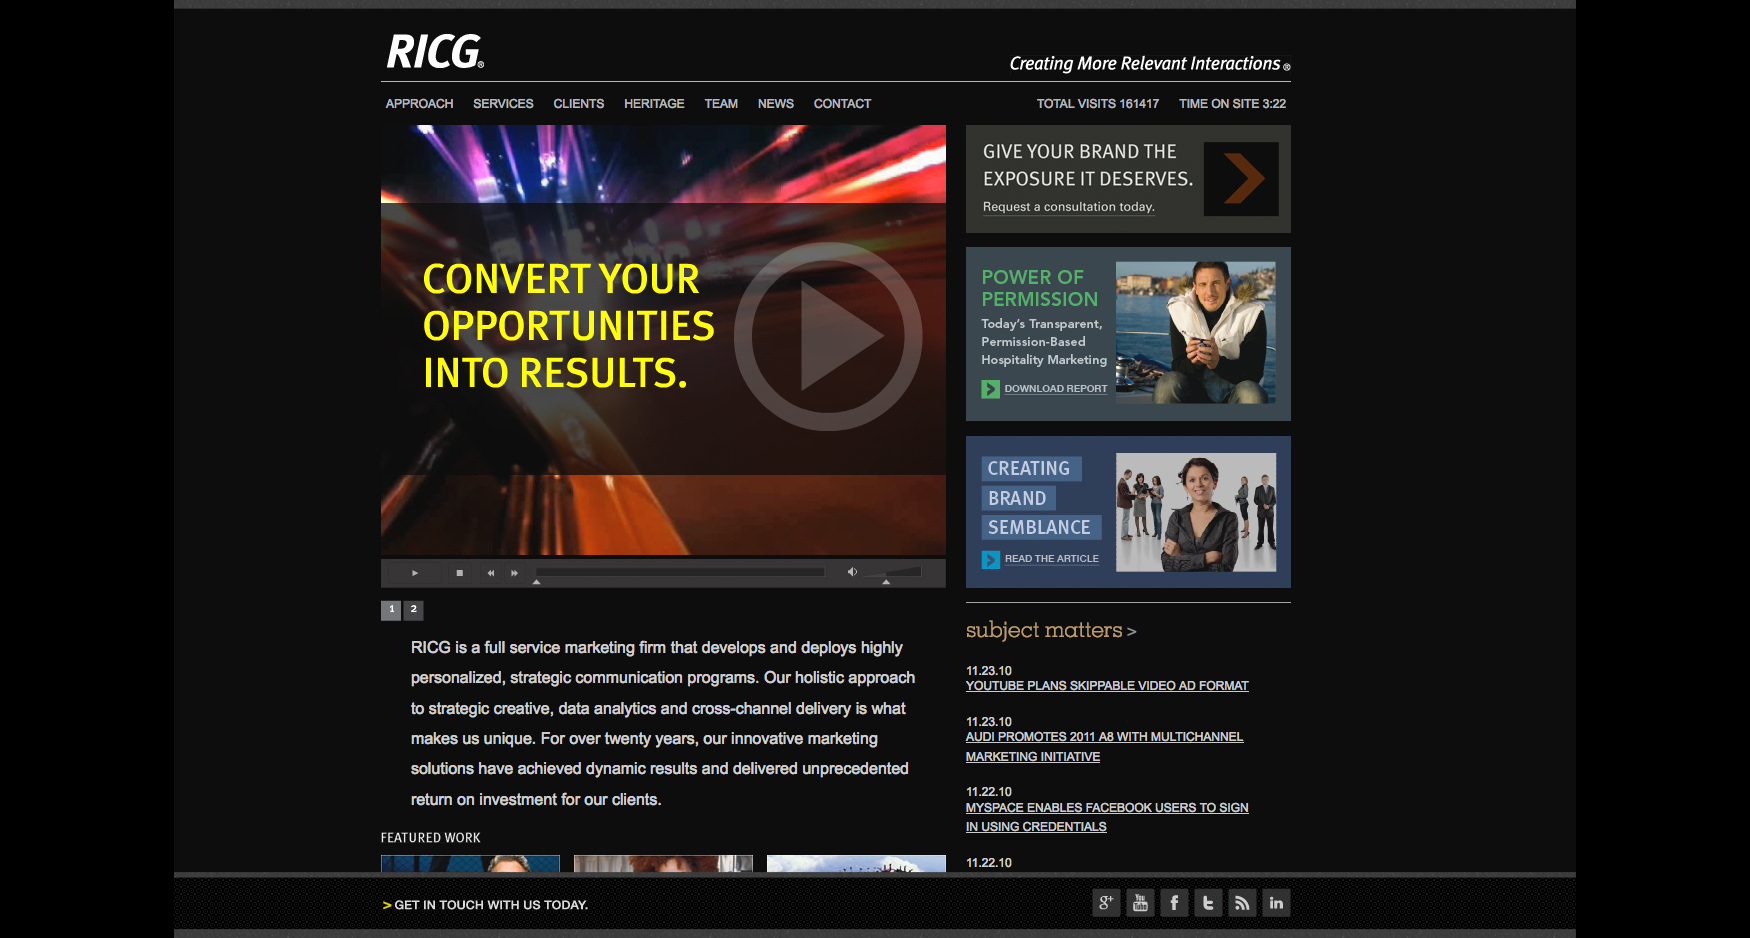 Homepage Test - RICG - CORPORATE WEBSITE